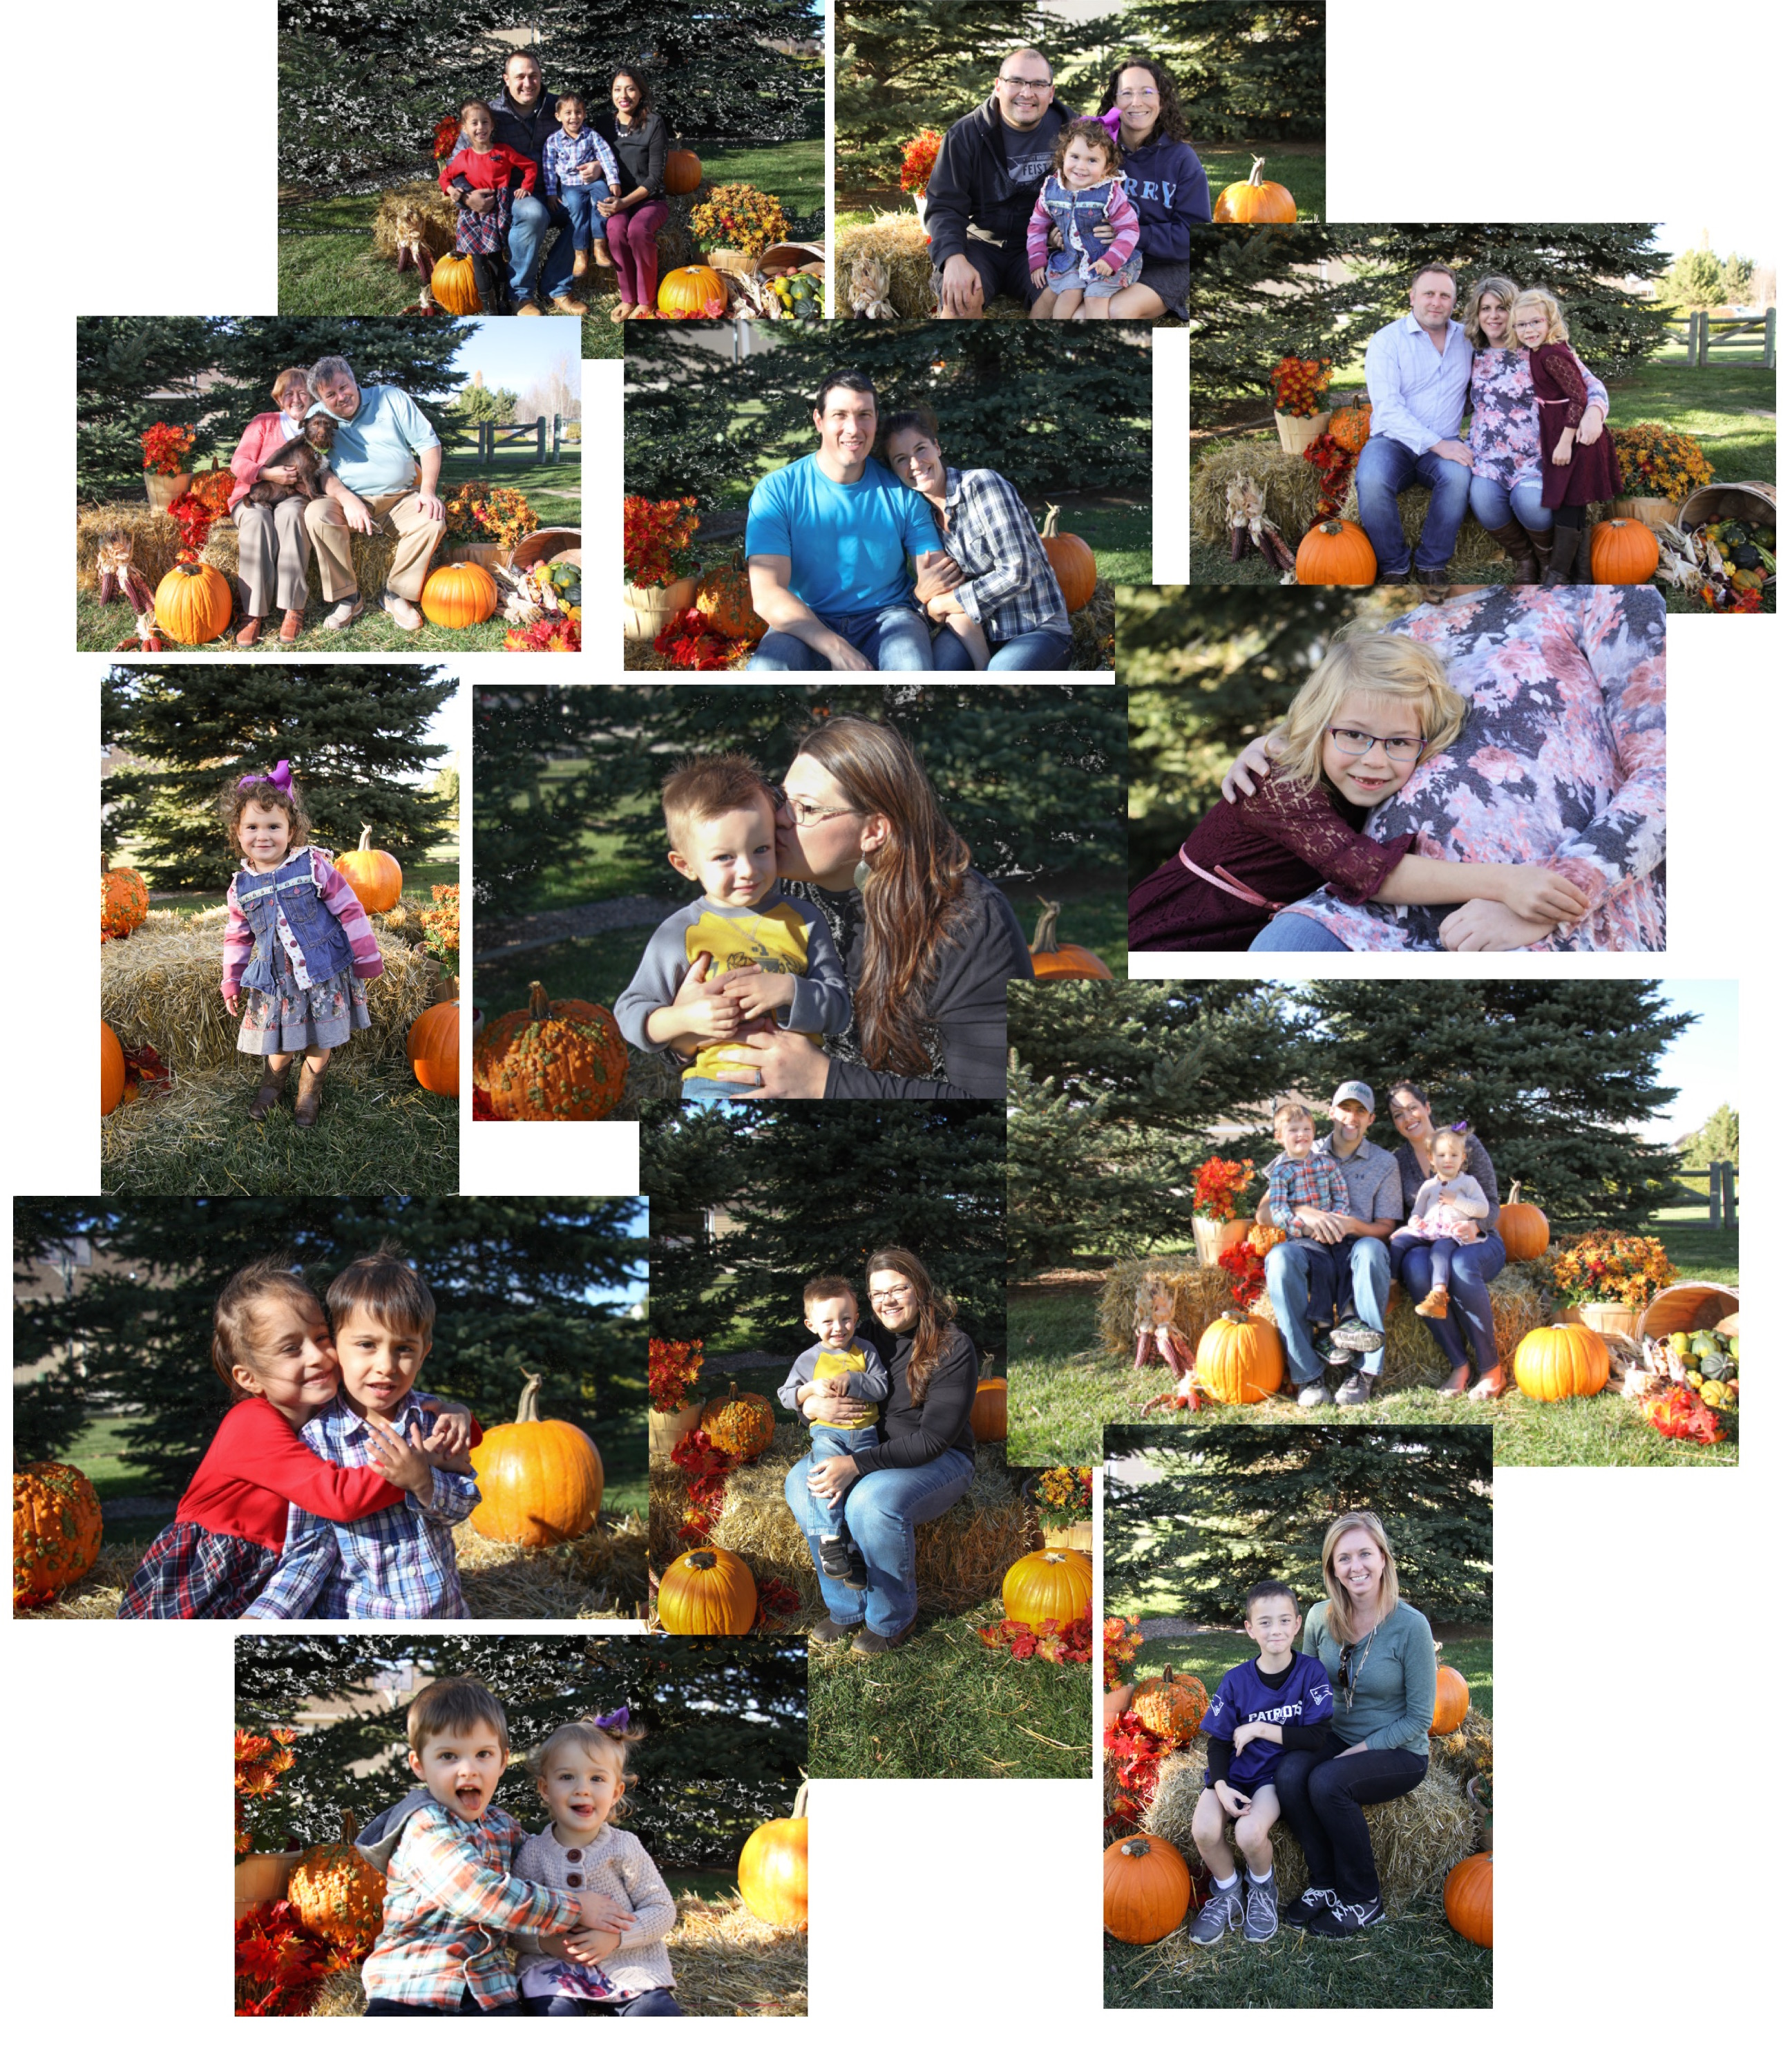 Fall Festival for Foster Children in Weld County // Real Estate and Lifestyle in Northern Colorado, a blog by Joanna Gyrath, REALTOR